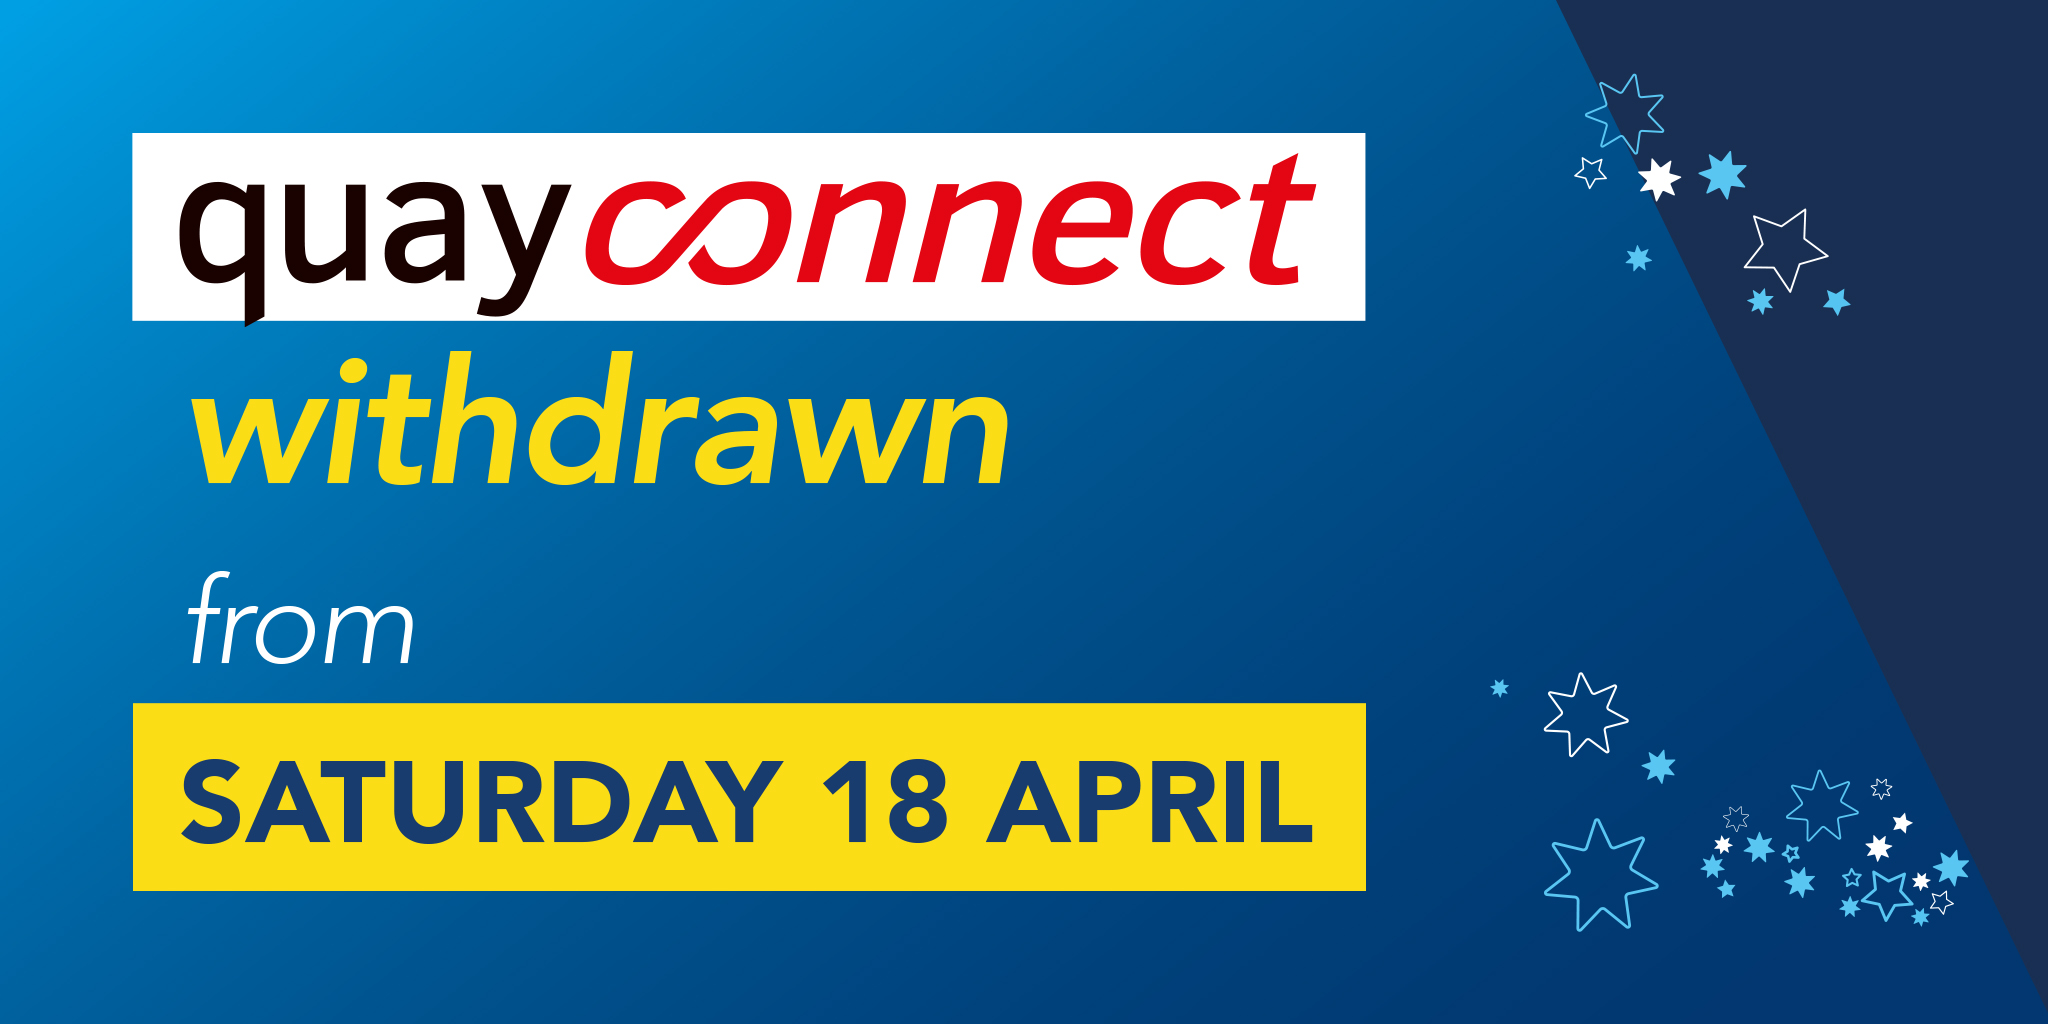 Image reading 'QuayConnect withdrawn from Saturday 18th April'